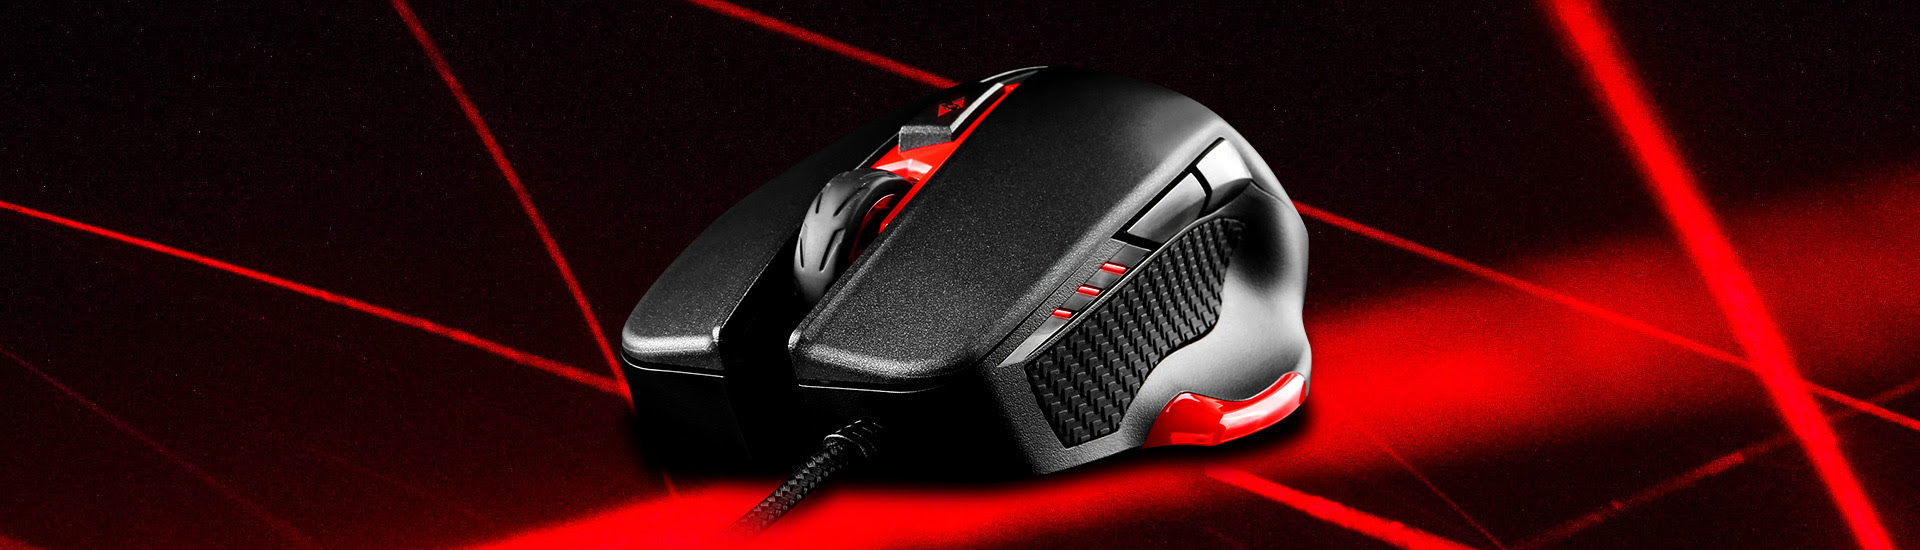 MSI introduce il nuovo mouse Gaming Interceptor DS300